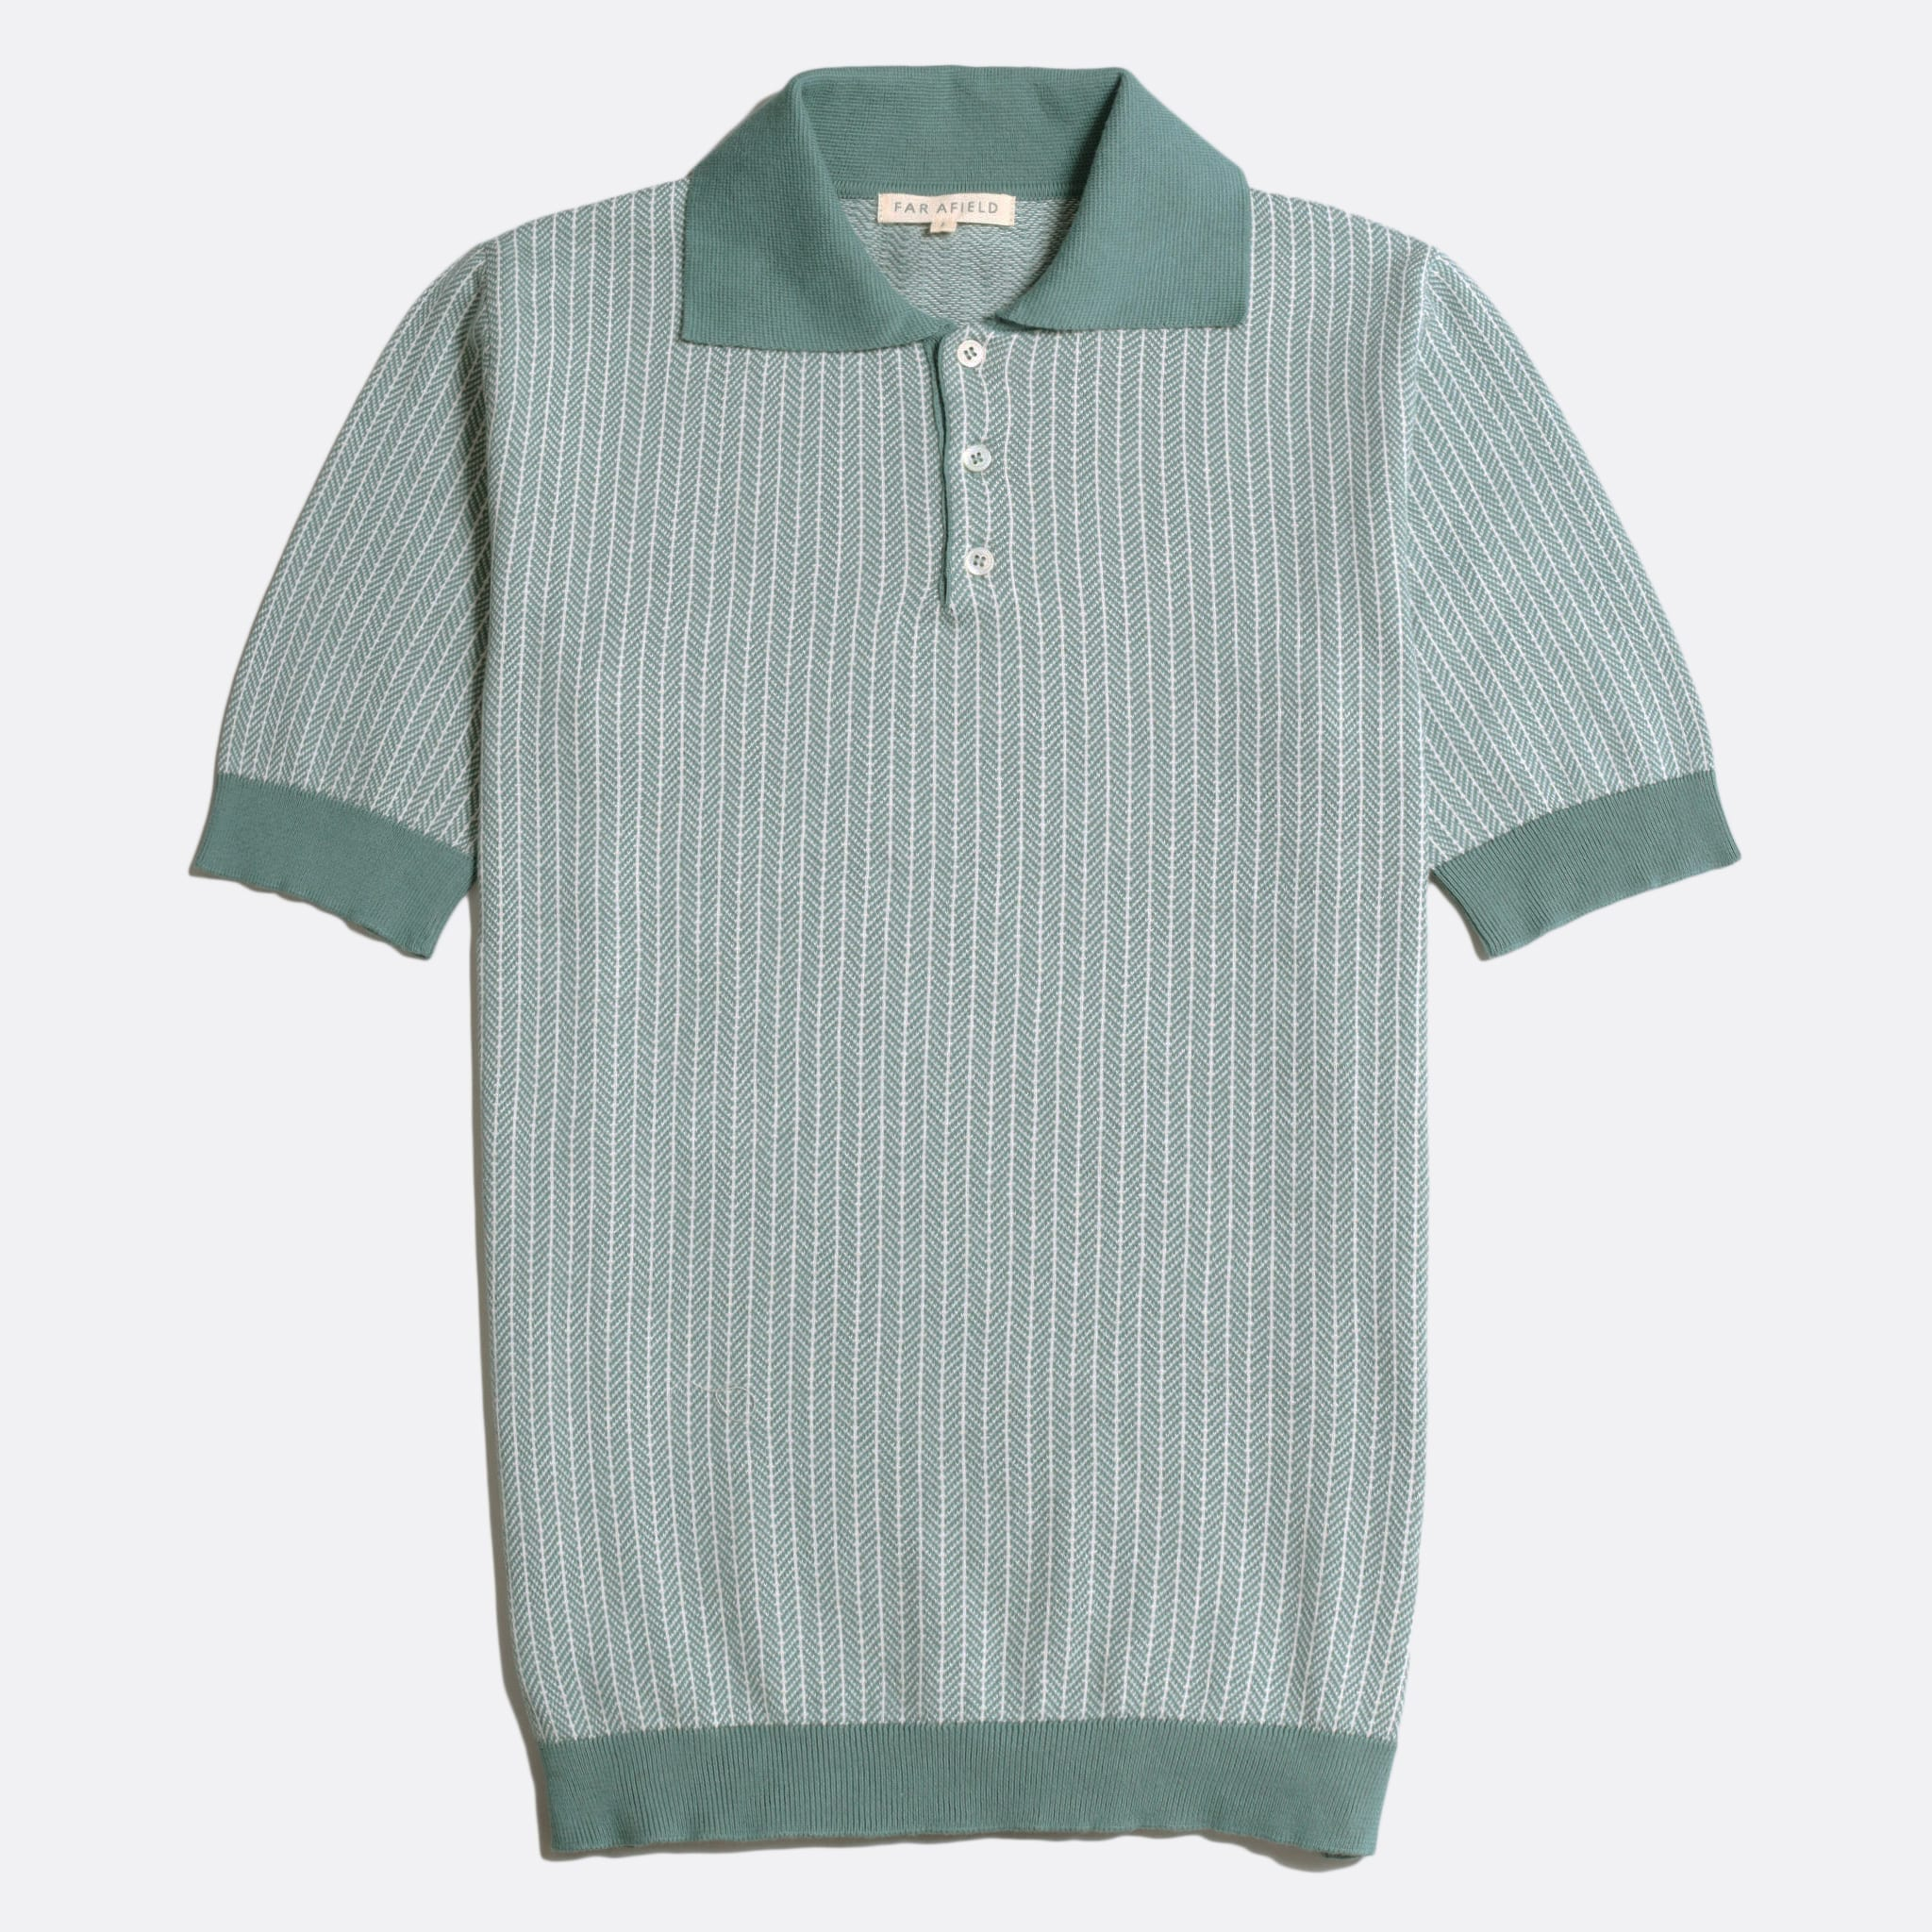 Far Afield Blakey Short Sleeve Polo a Sagebrush Green Organic Cotton Fabric Short Sleeve Polo Mid Century Inspired